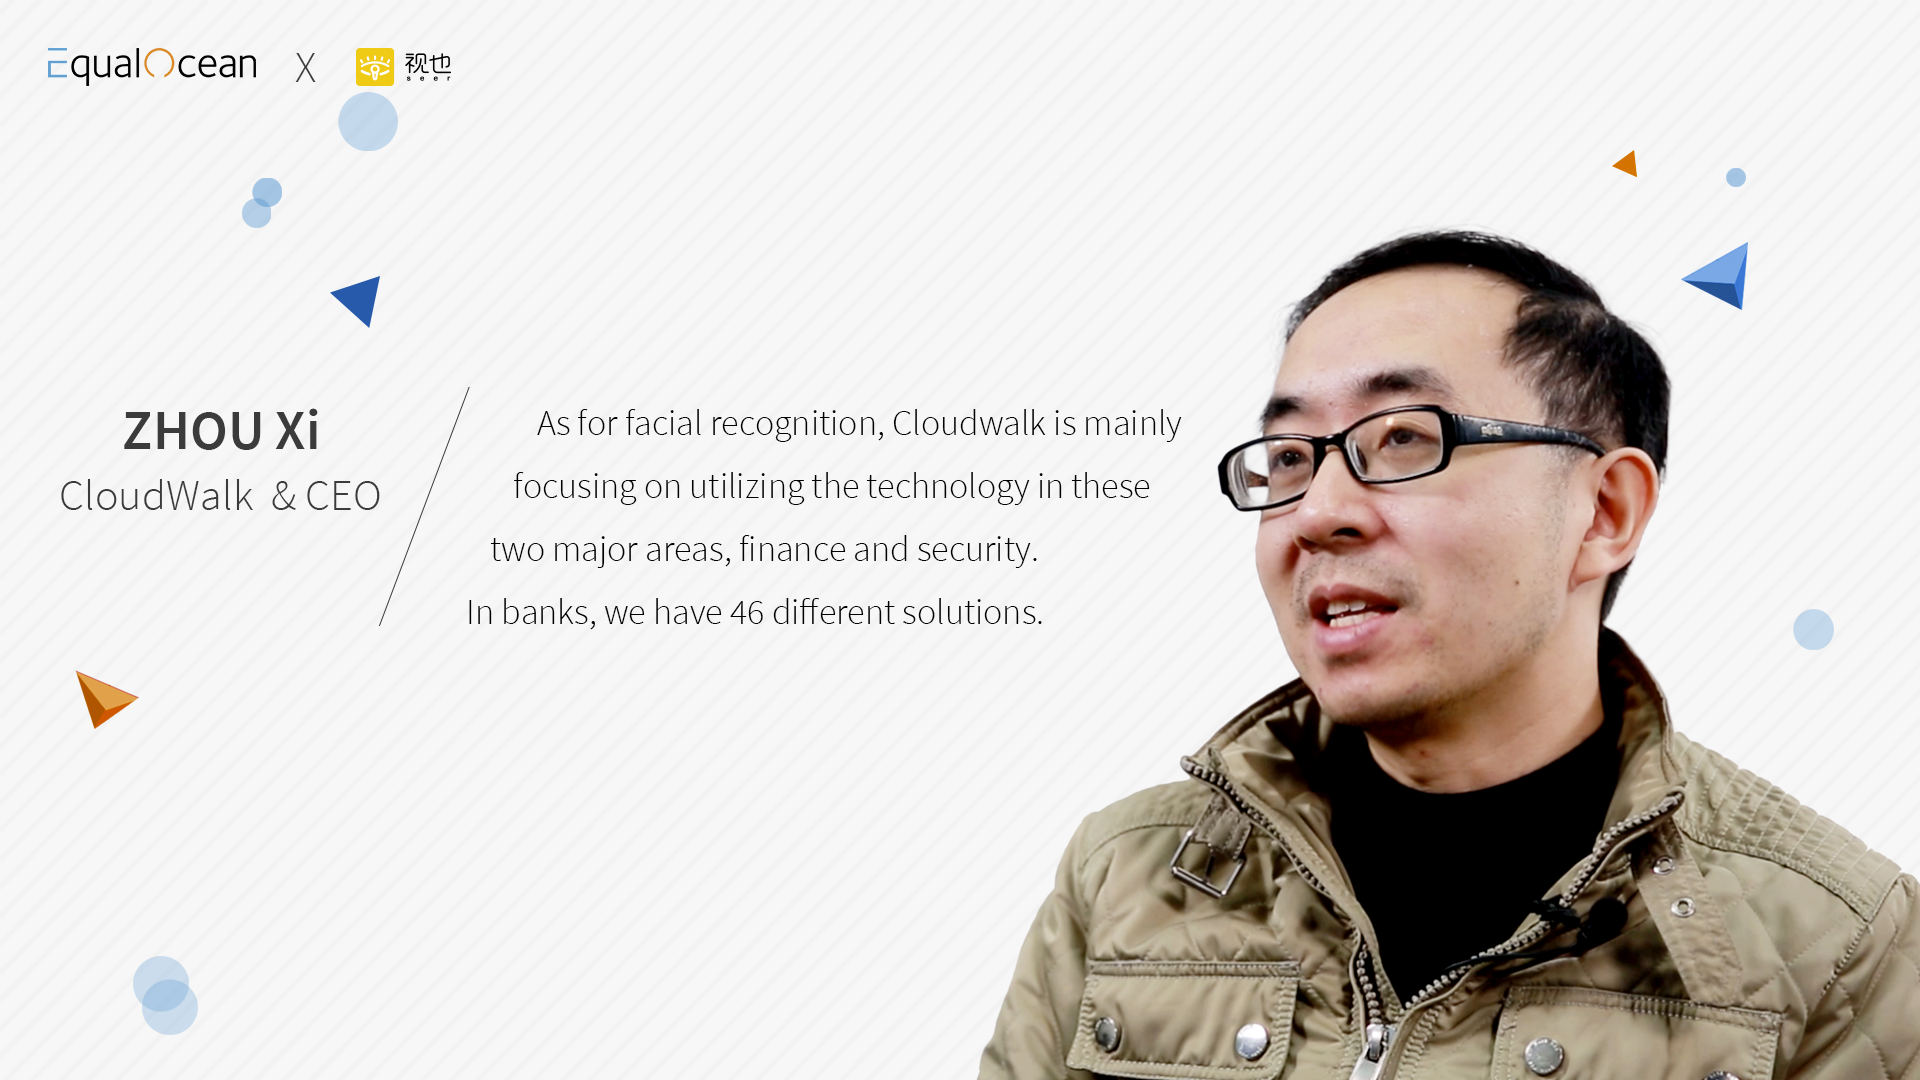 We Define AI - CloudWalk CEO, ZHOU Xi